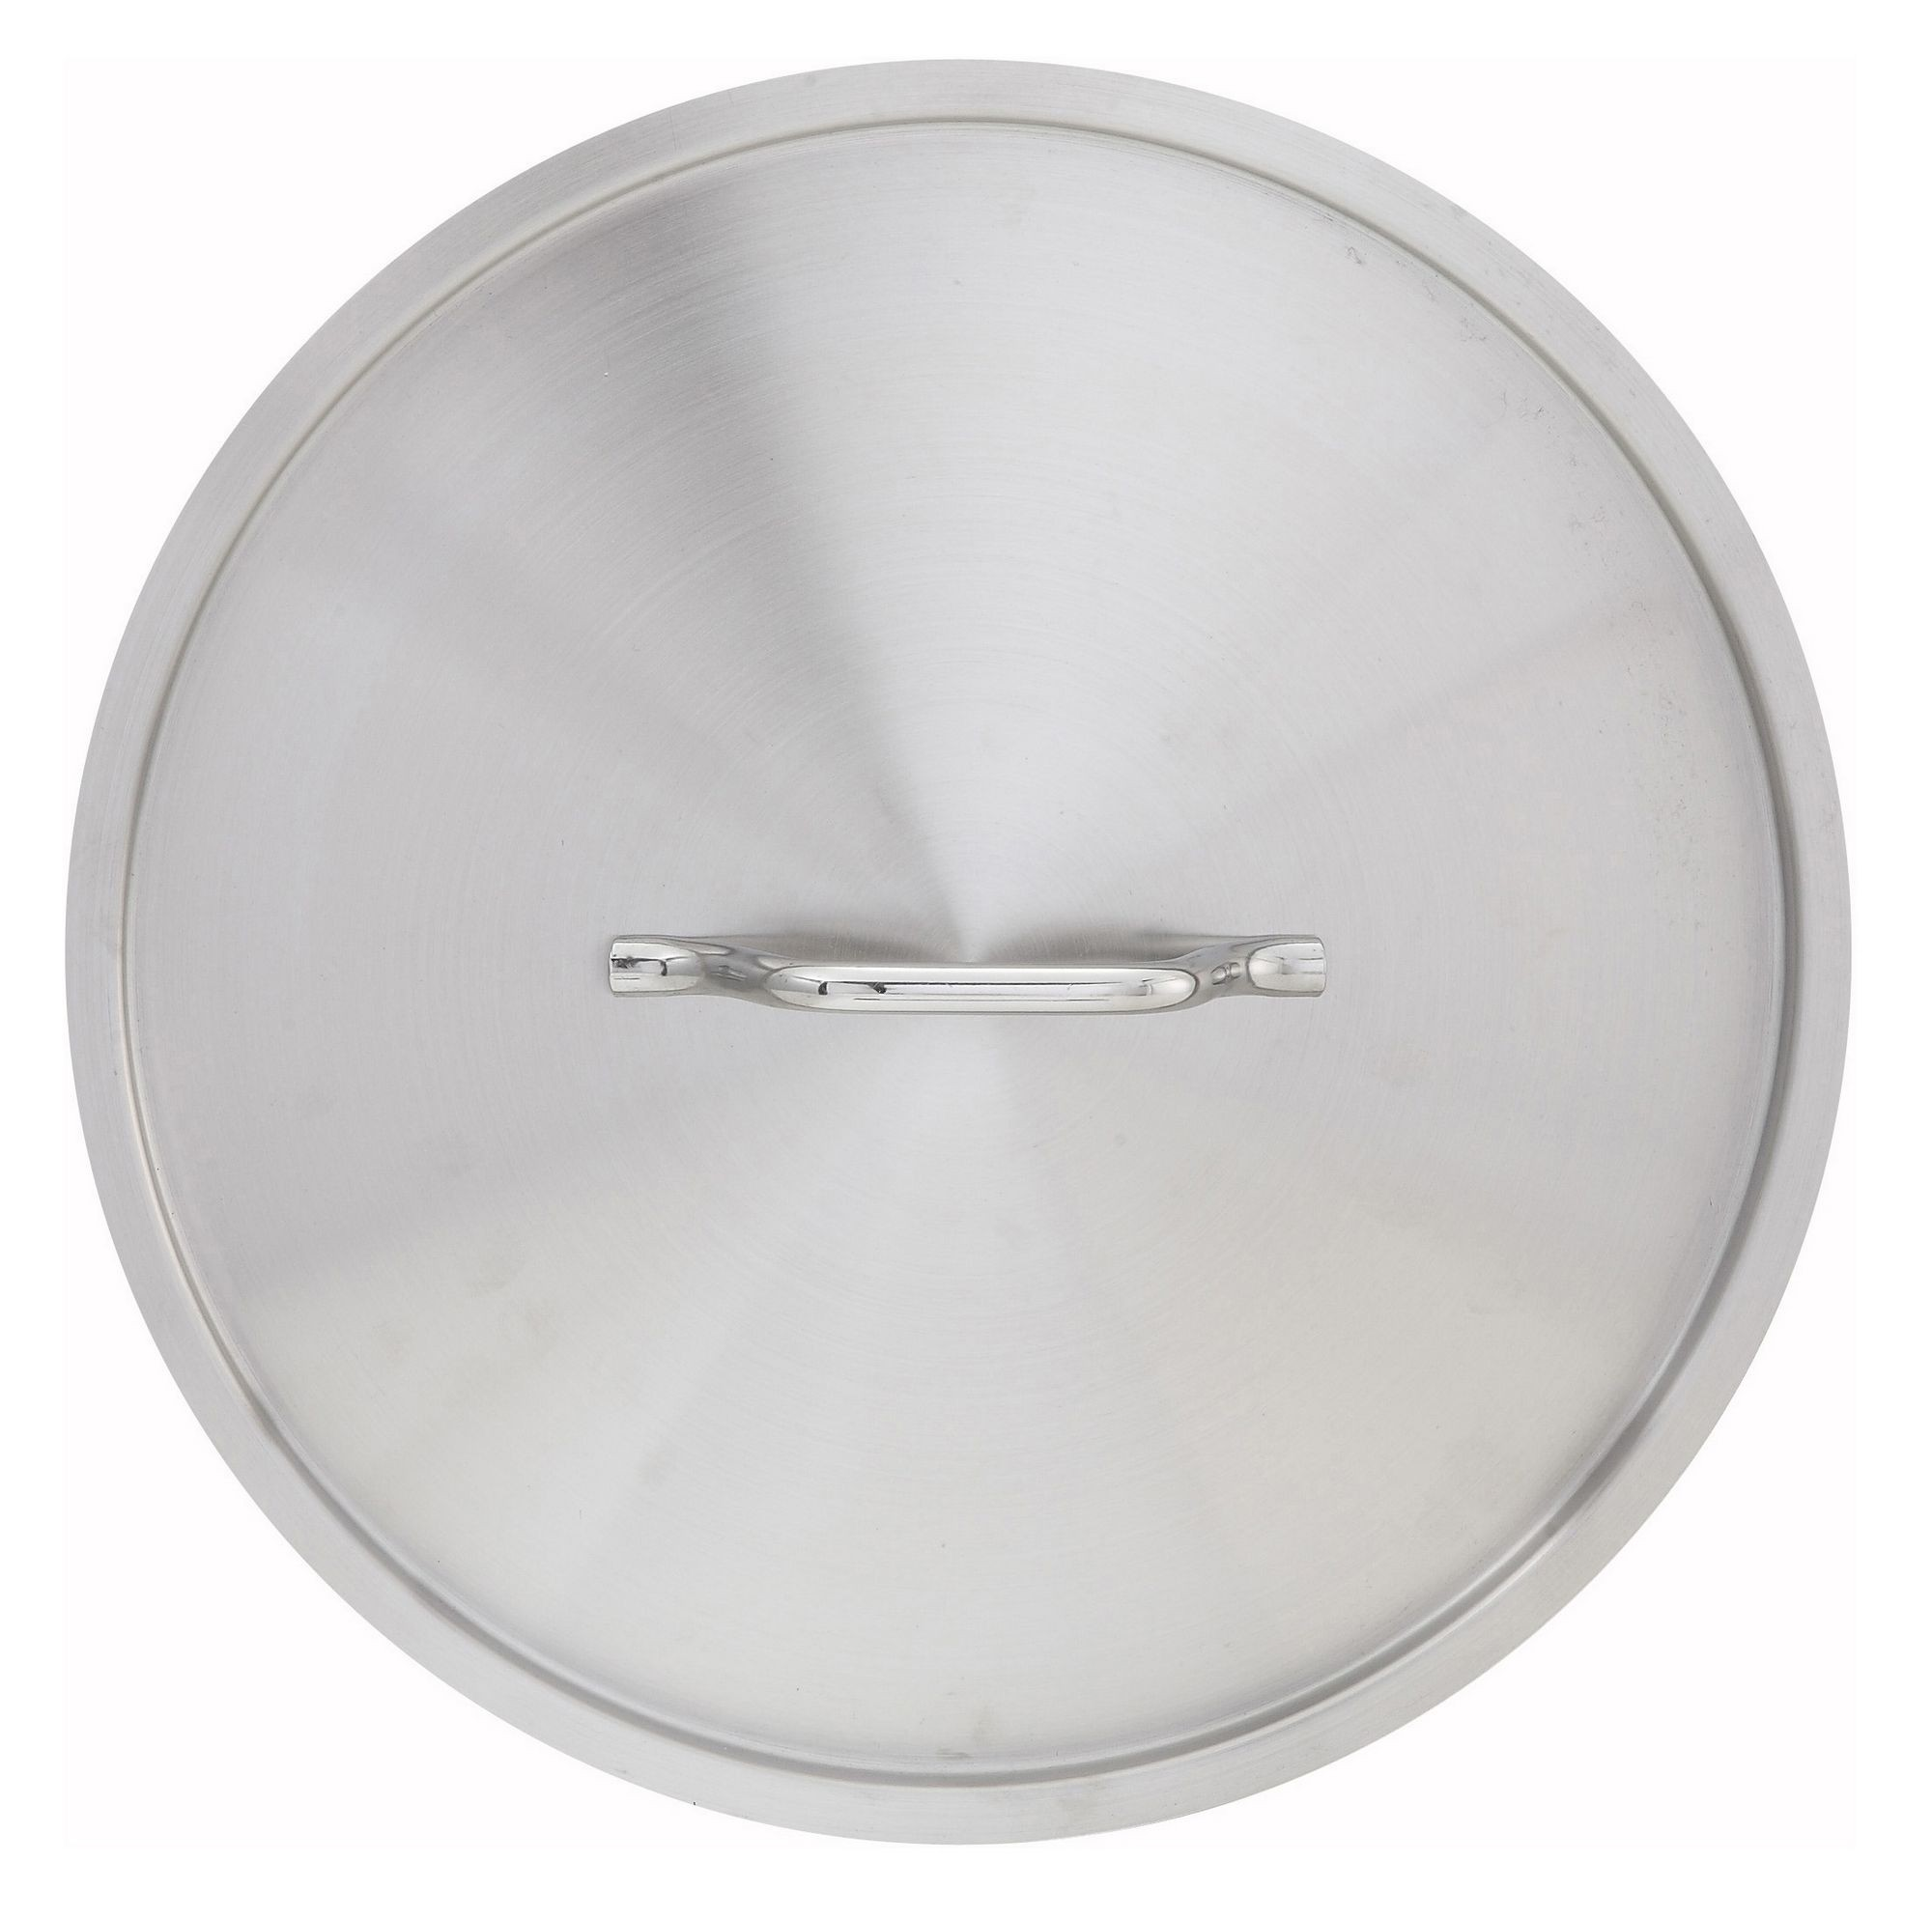 Stainless Steel Cover For 24-Qt Stock Pot (SST-24)